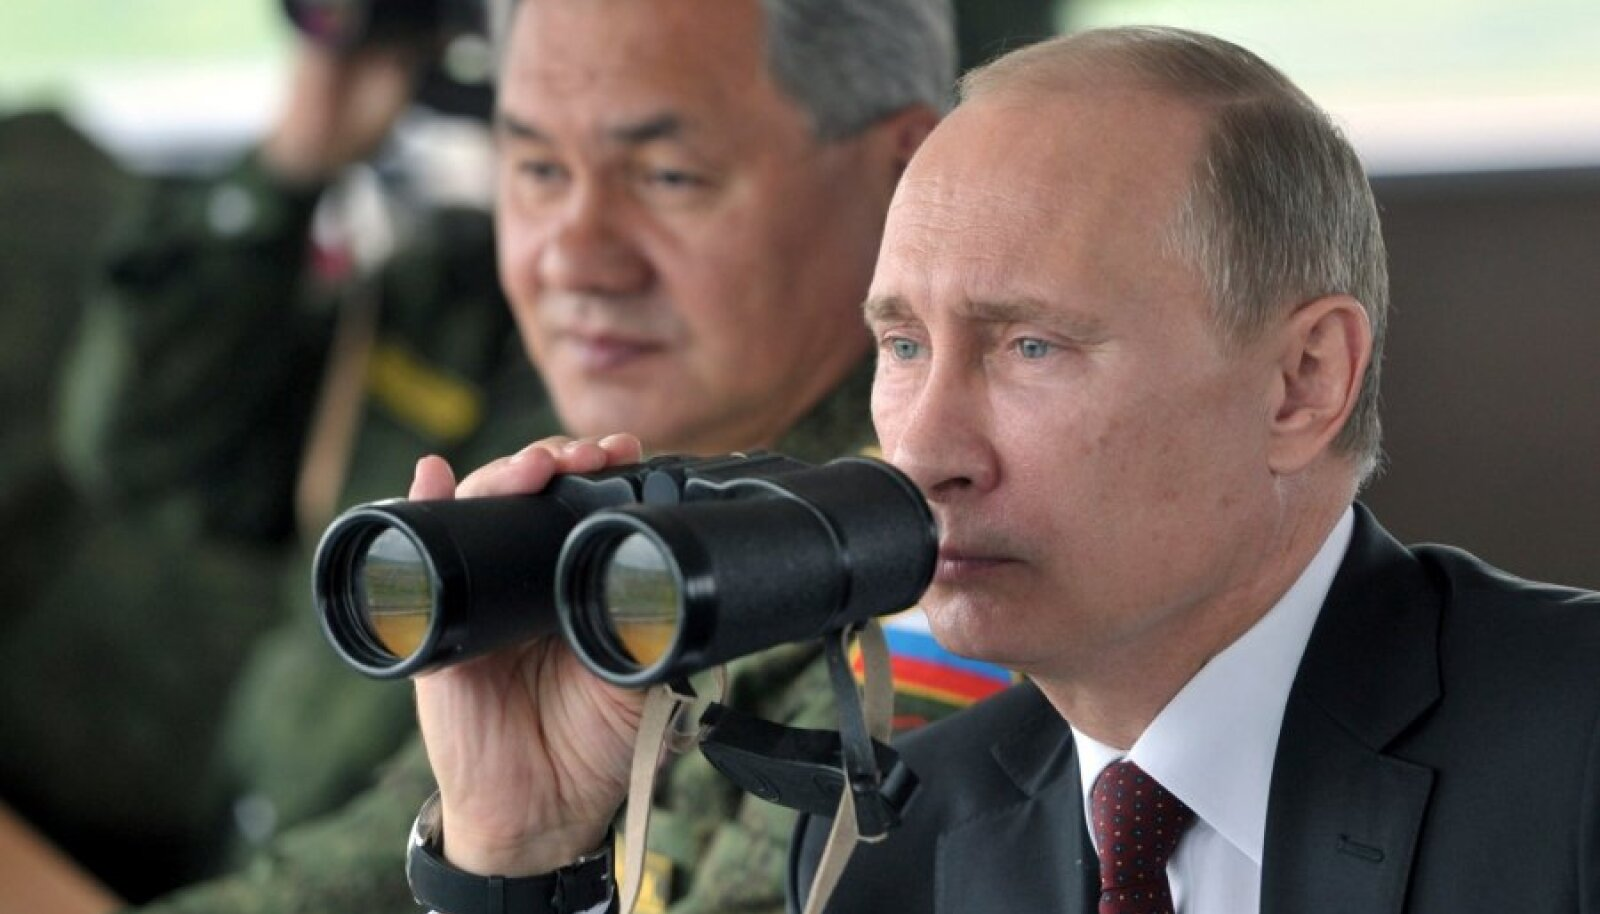 Russian President Putin watches military exercises with DM Shoigu during his visit to Russia's far eastern Sakhalin region